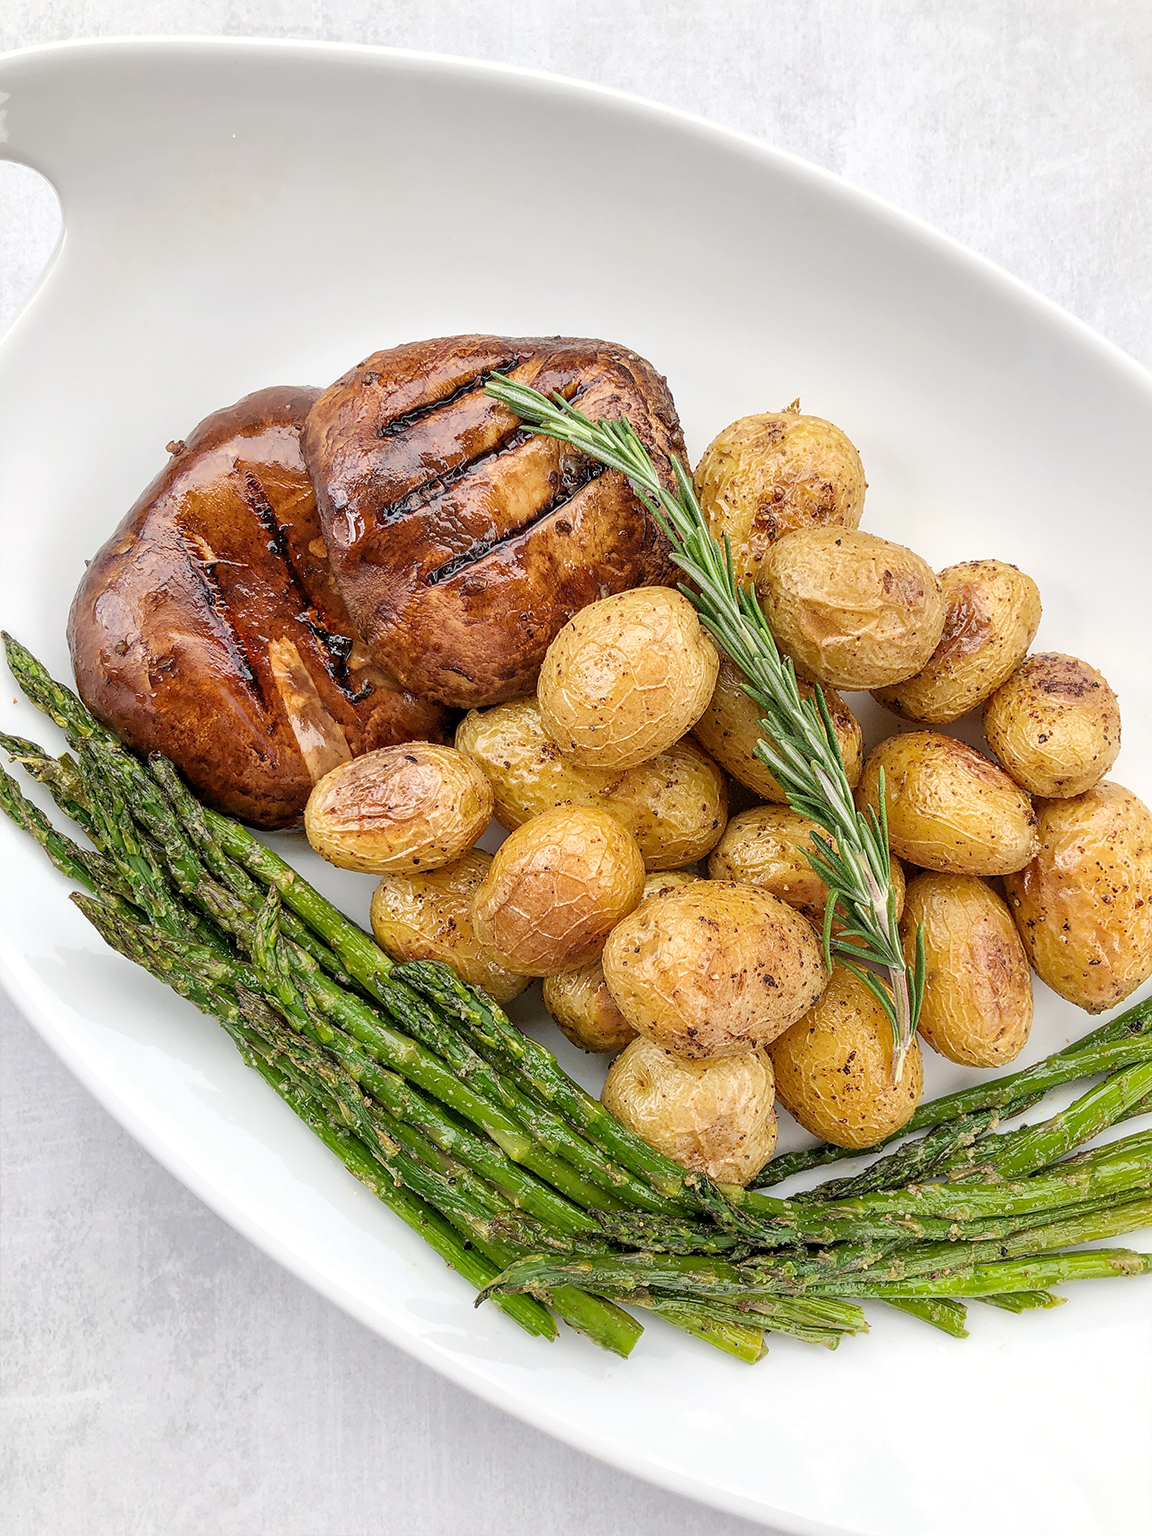 Grilled Portobello Mushroom Steaks with Potatoes and Asparagus